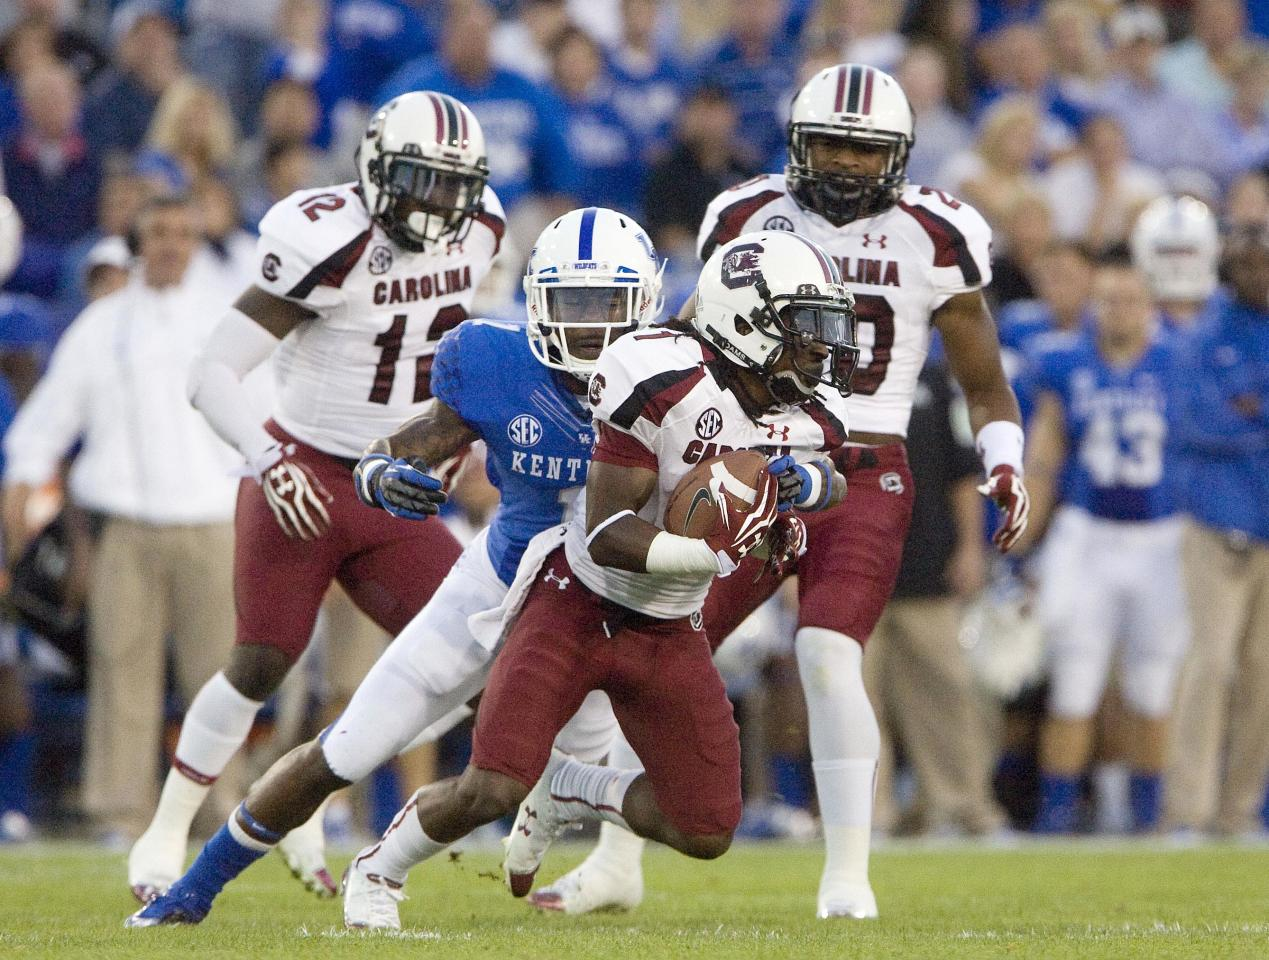 Sept 29, 2012; Lexington, KY, USA; Kentucky Wildcats cornerback Martavius Neloms (1) tackles South Carolina Gamecocks wide receiver Ace Sanders (1) during the first half at Commonwealth Stadium. Credit: Mark Zerof-US PRESSWIRE